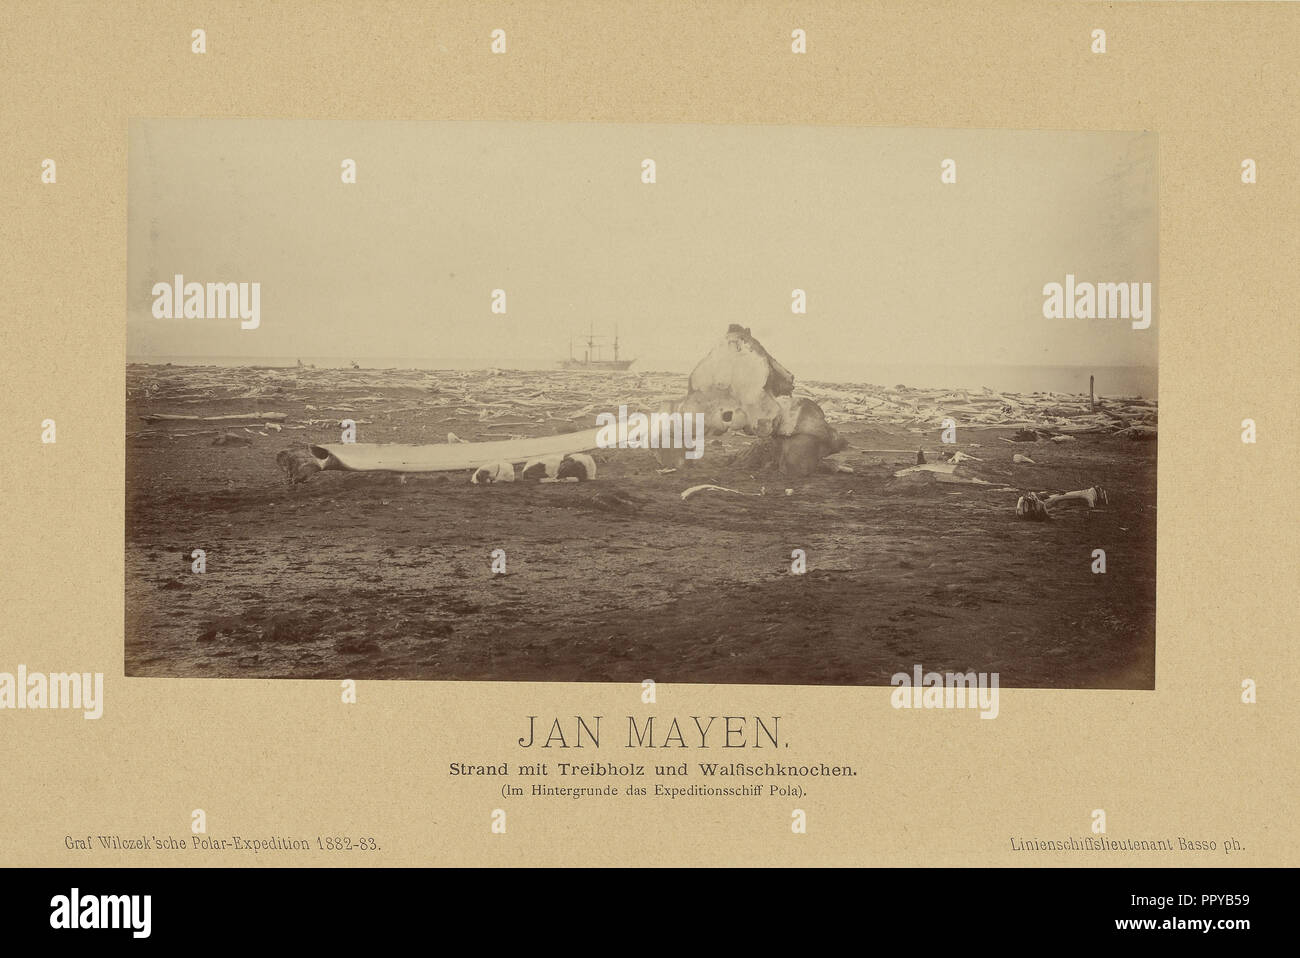 Jan Mayen, Strand mit Treibholz und Walfischknochen., Im Hintergrunde des Expeditionsschiff Pola);, Linienschiffs-Lieutenant - Stock Image